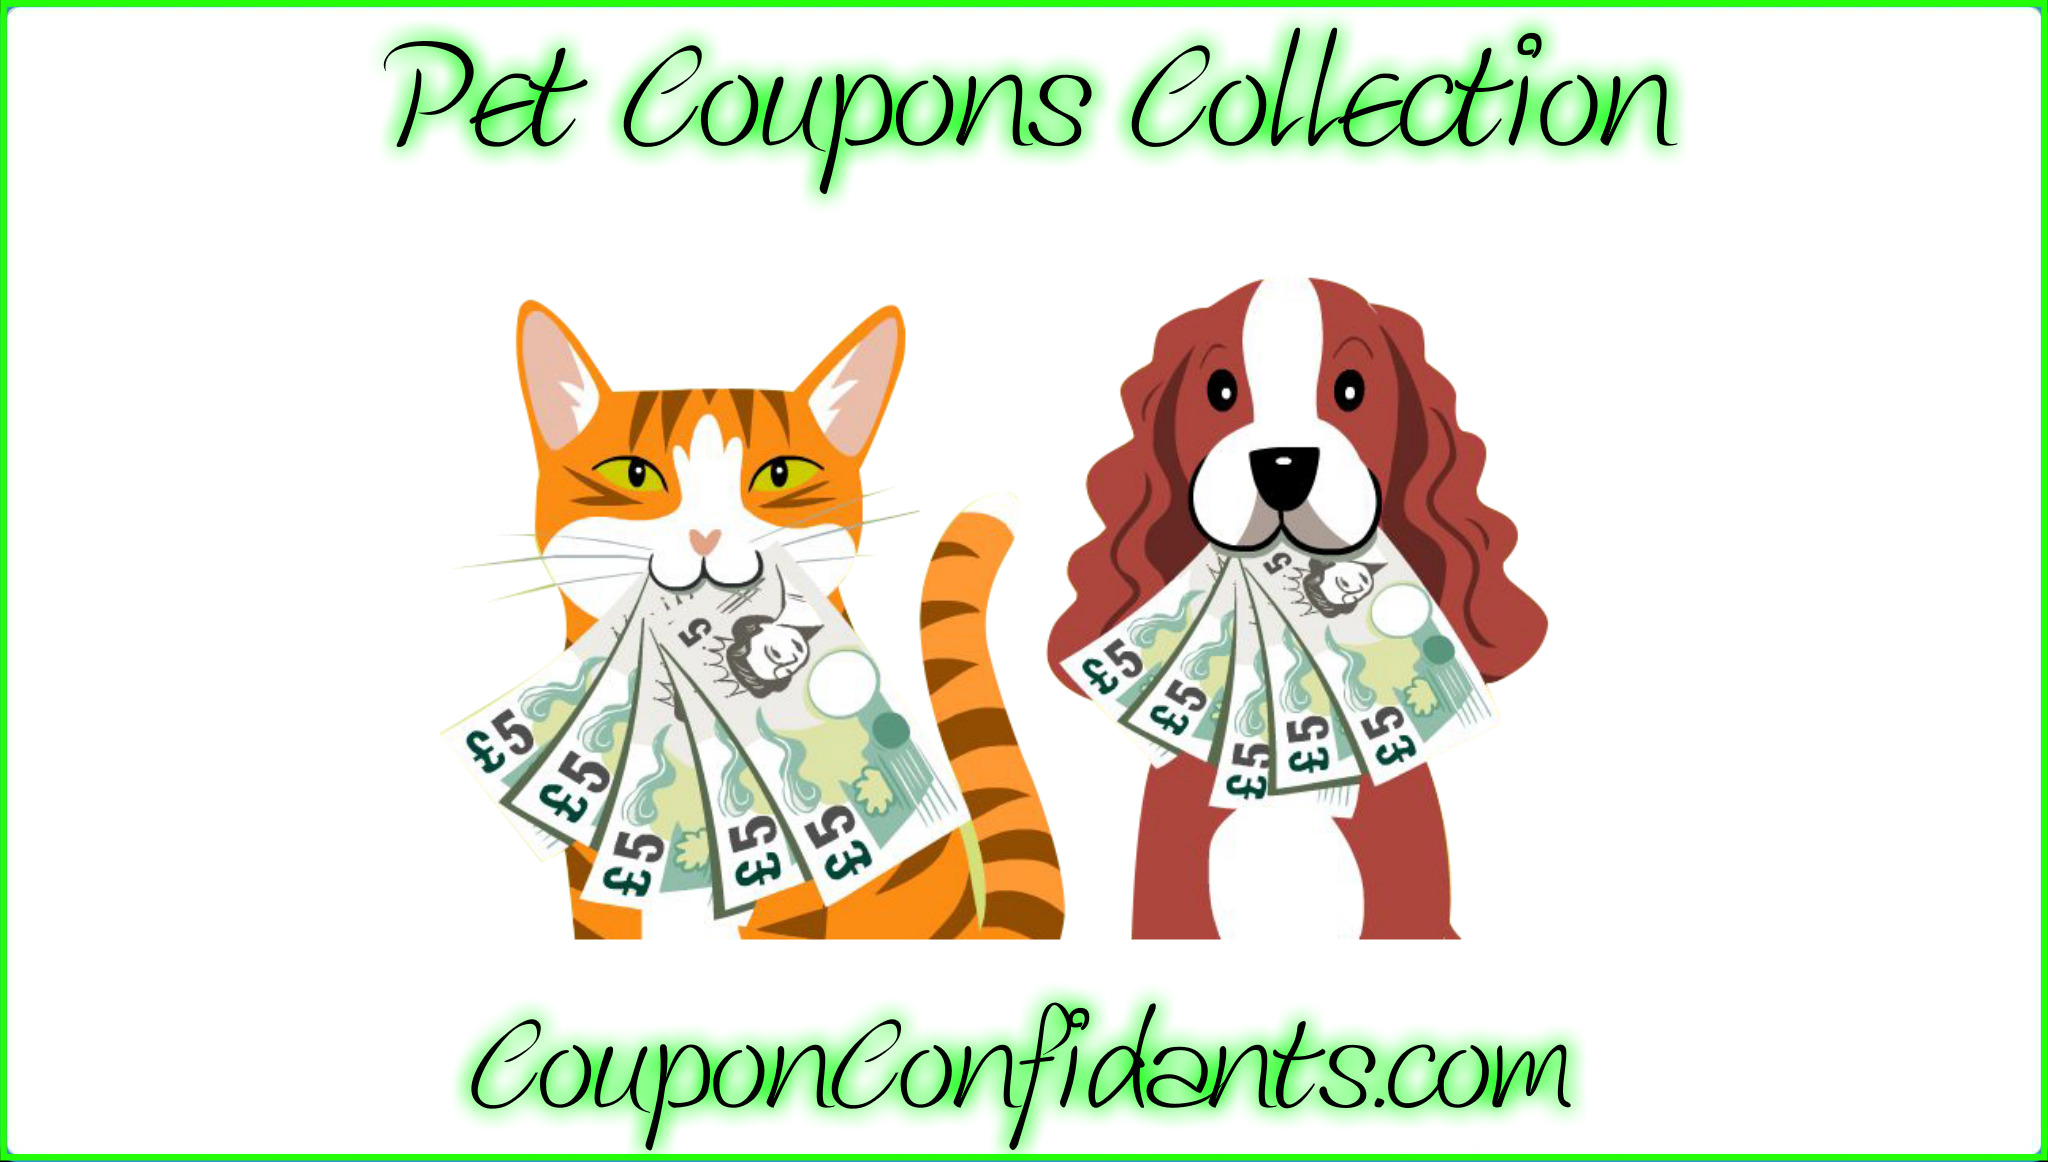 Printable Pet Coupons Collection!